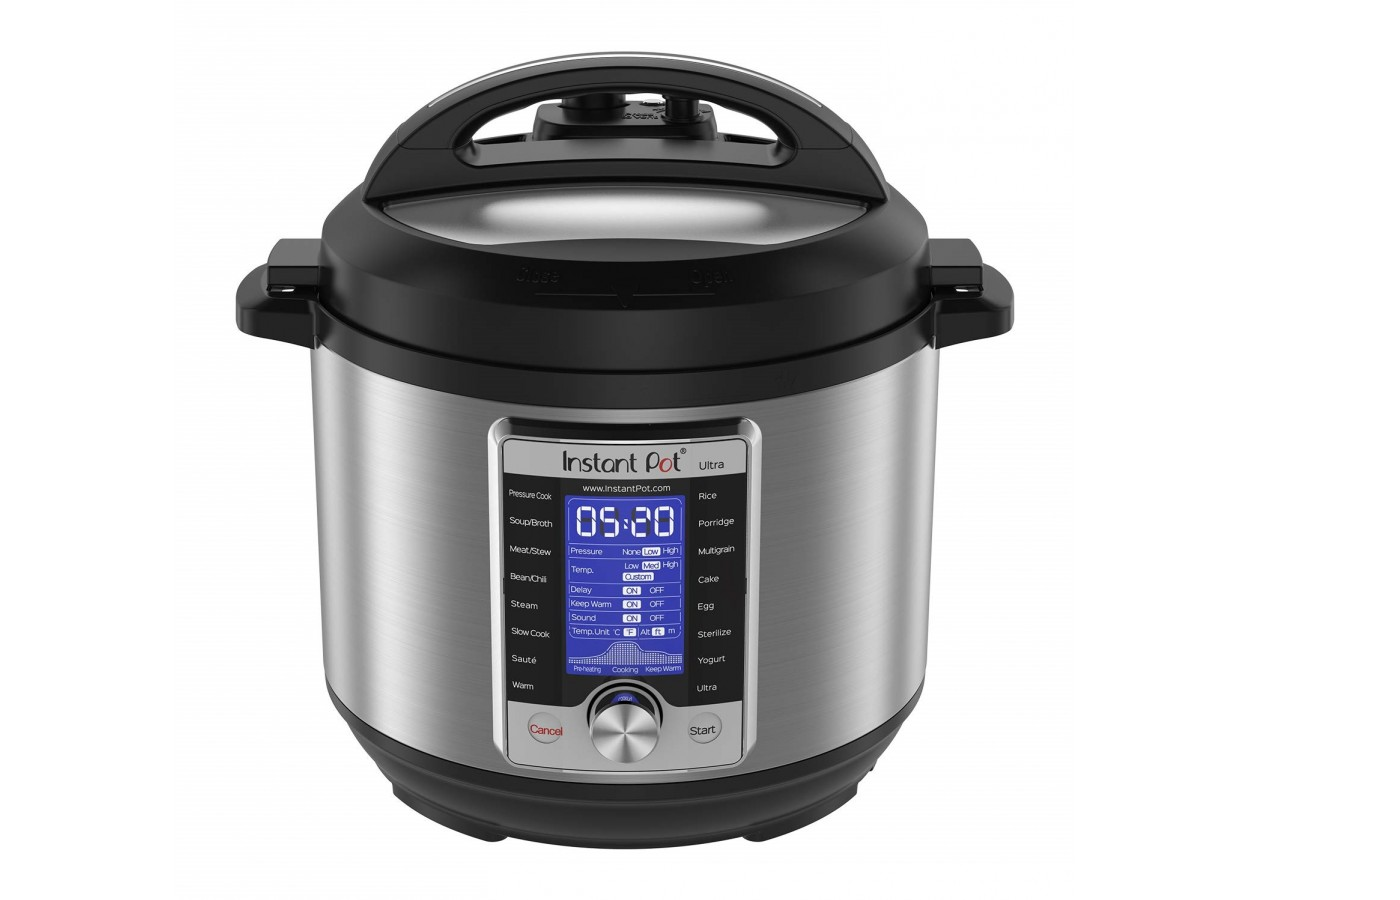 The Instant Pot Duo offers 70% quicker cook times.